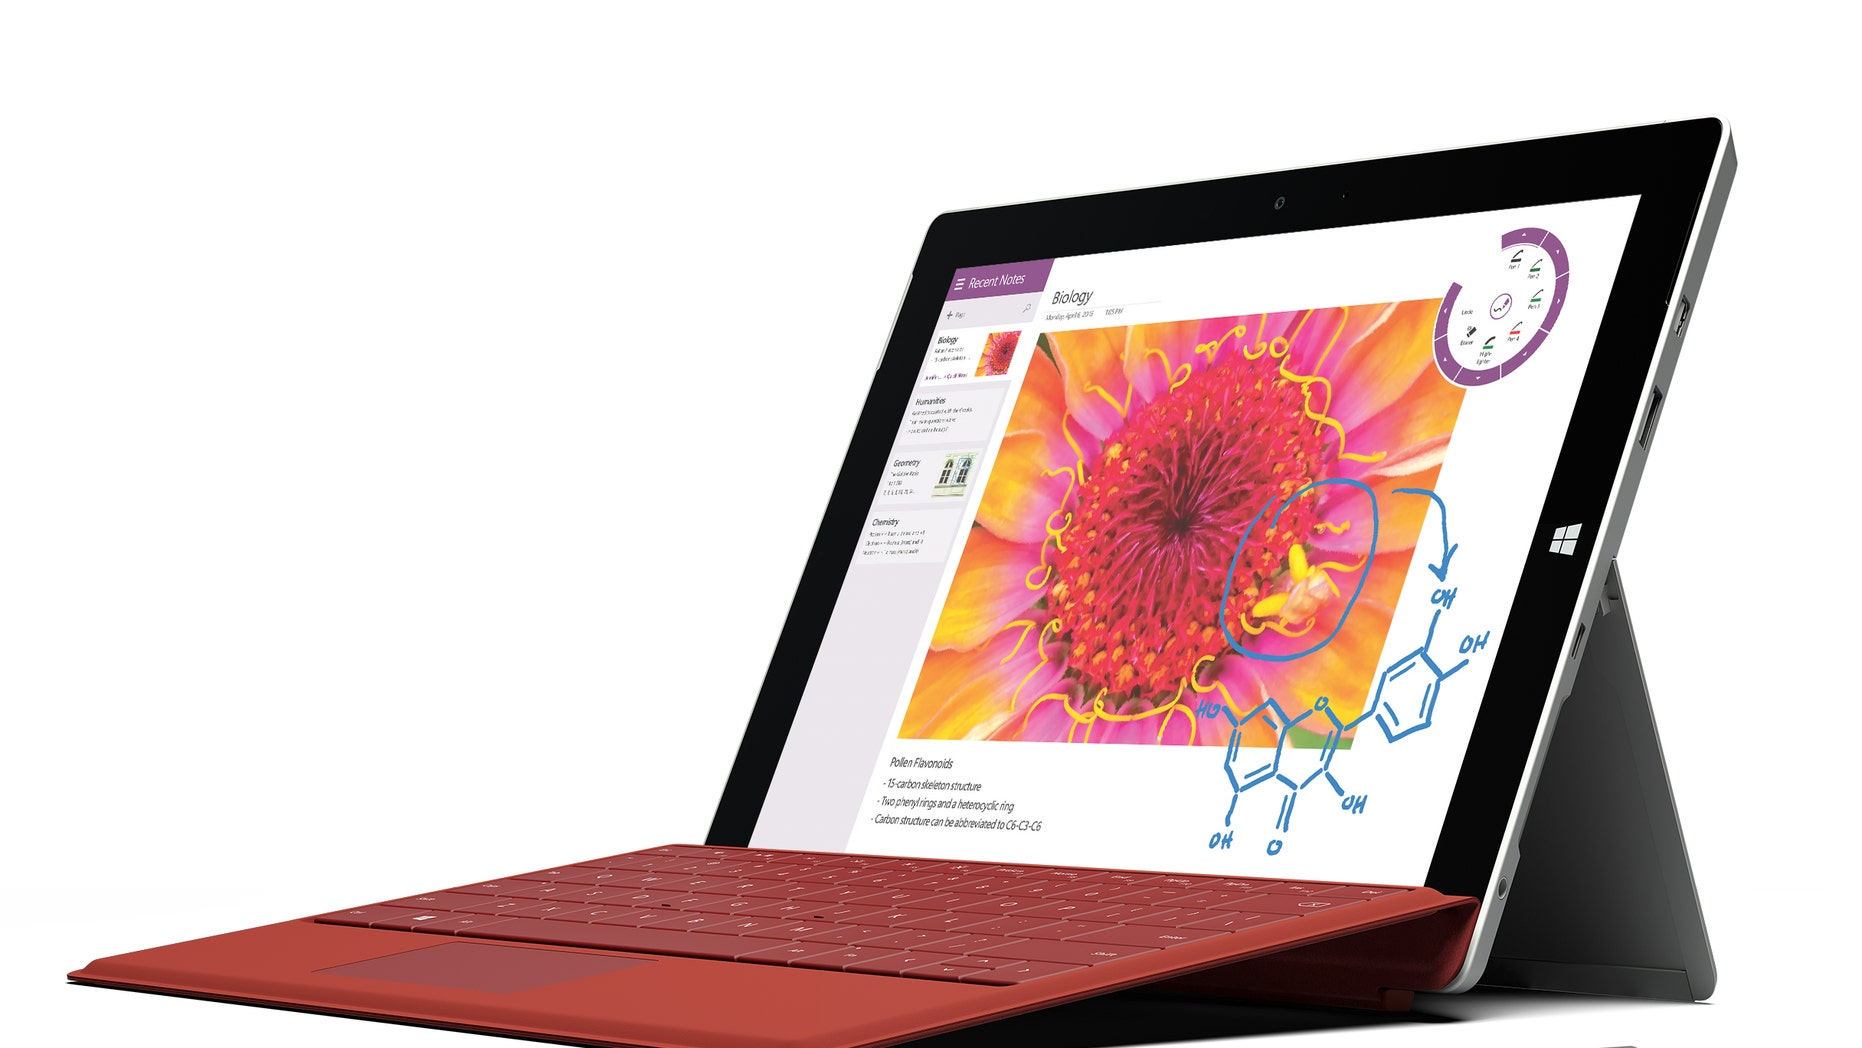 This product image provided by Microsoft shows the company's new Surface 3 tablet.